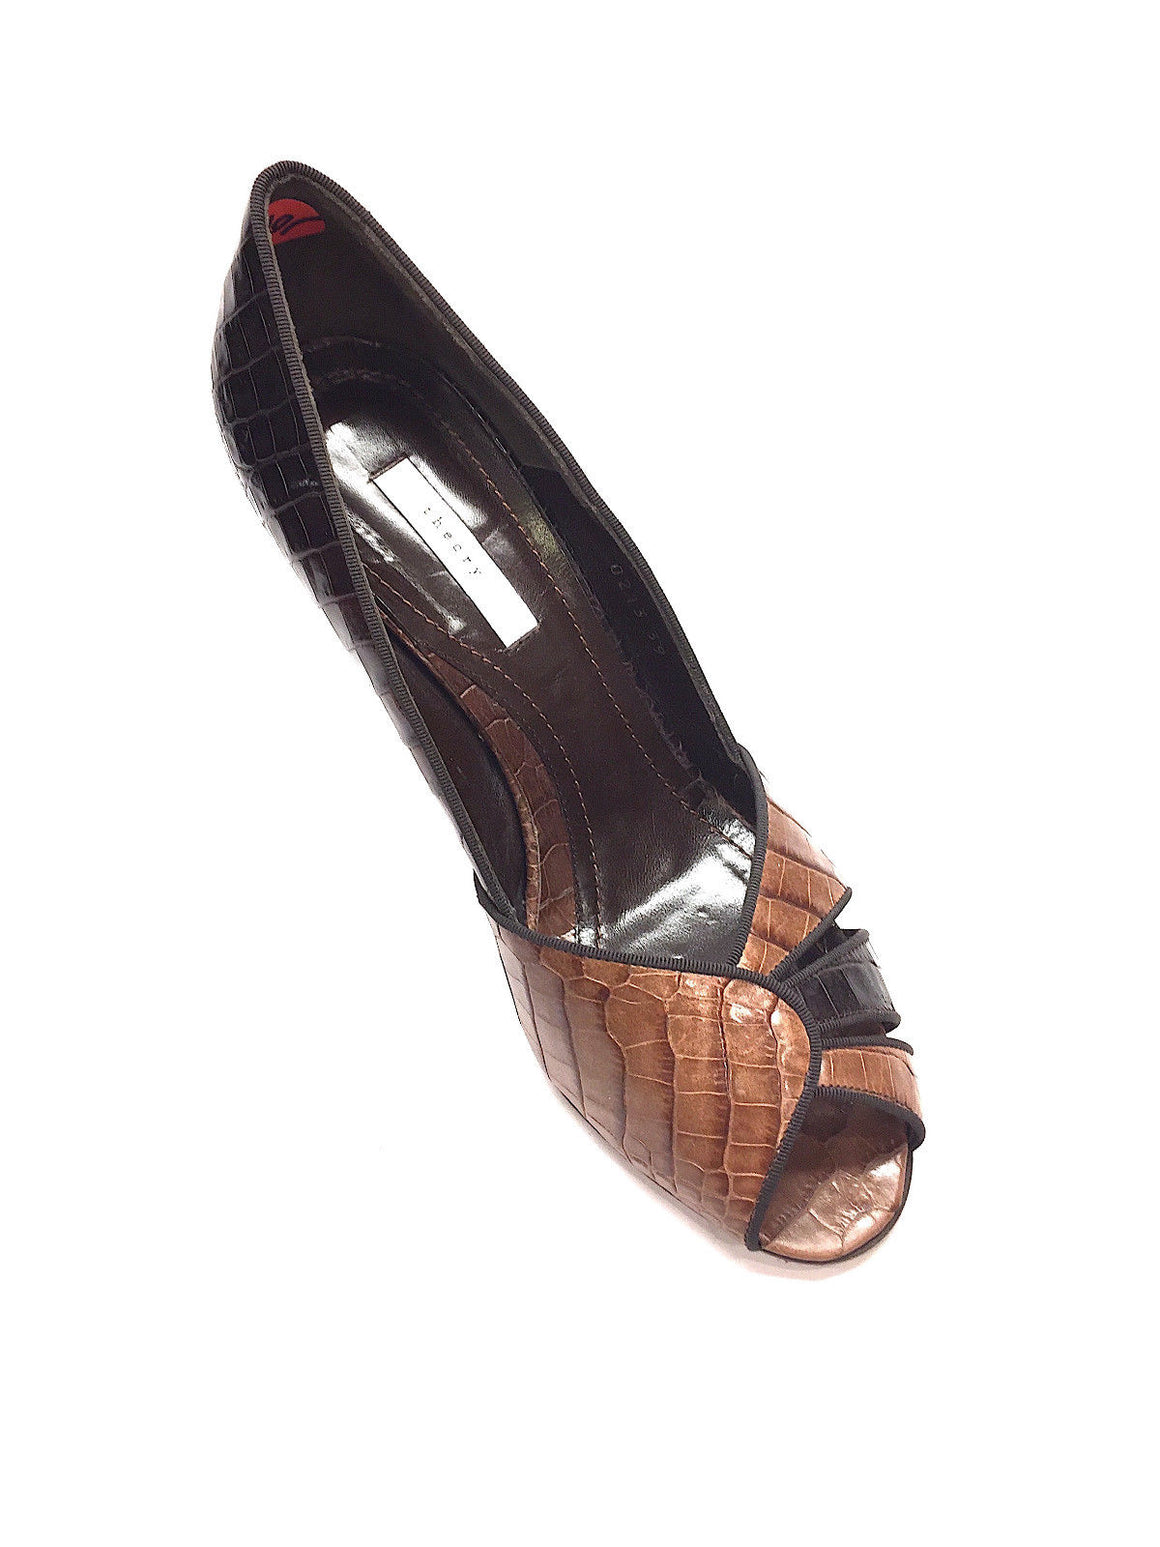 THEORY Brown / Tan Croc Skin Open-Toe Heel Pumps  Size: EU 39 / US 9